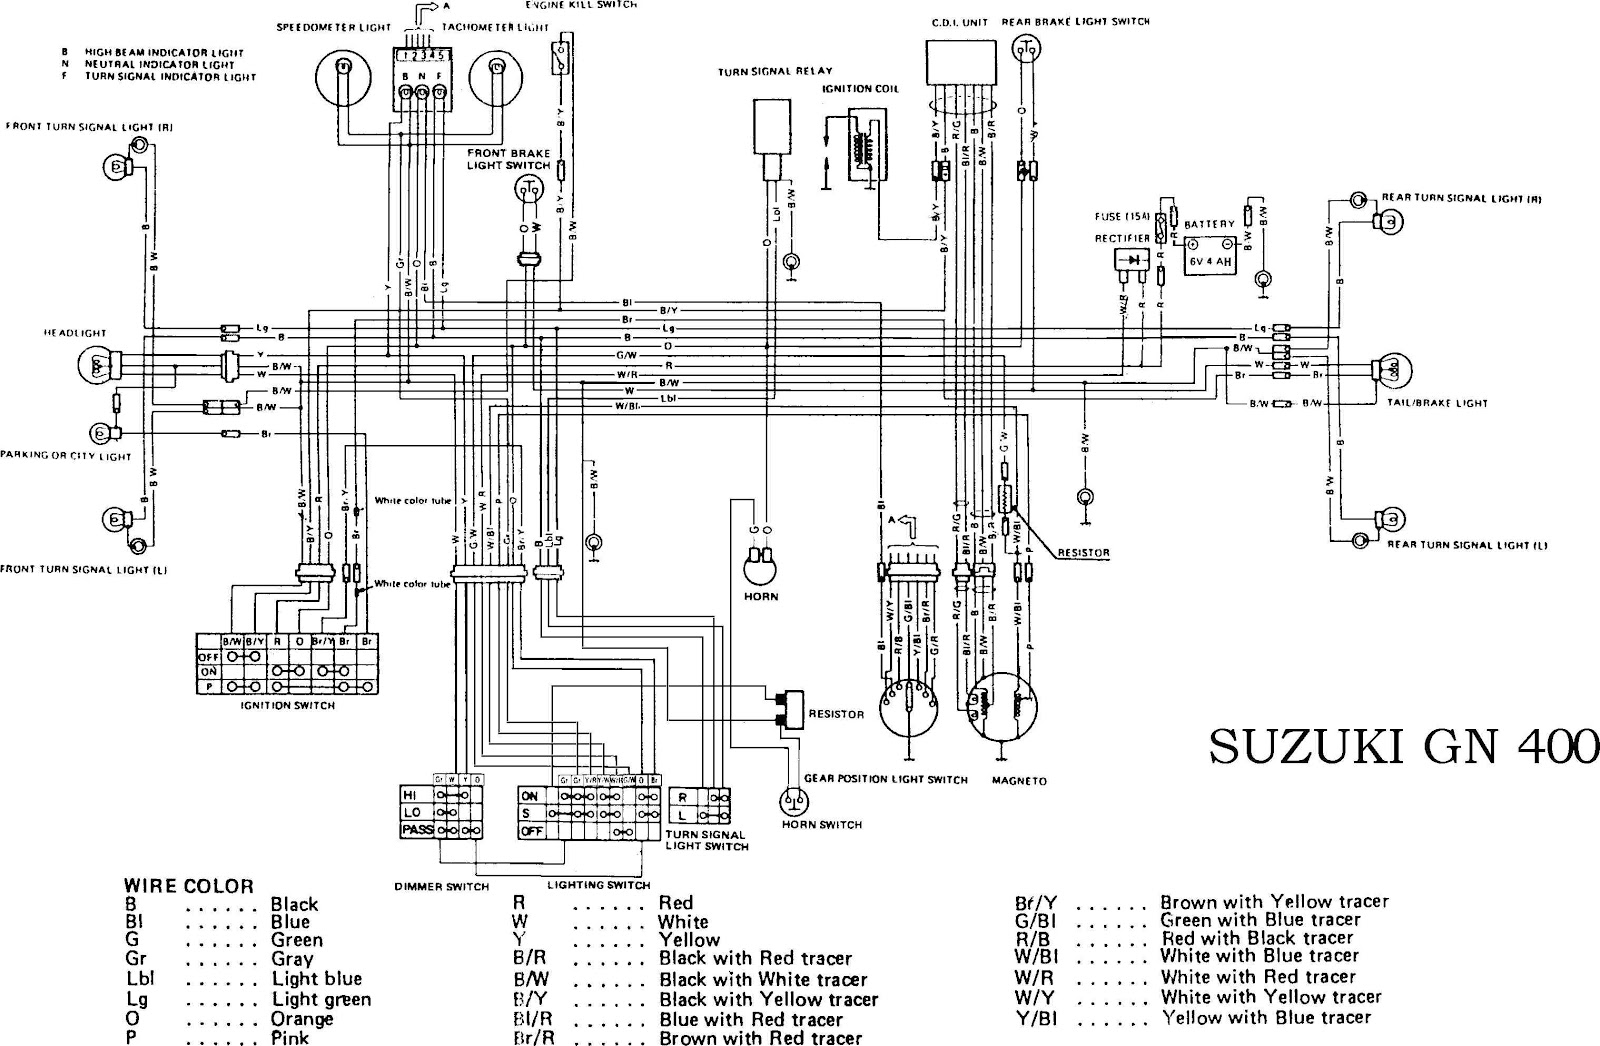 simple wiring diagram for light switch simple wiring diagram suzuki 600 suzuki gsx-r600 srad motorcycle 1998 complete electrical ...